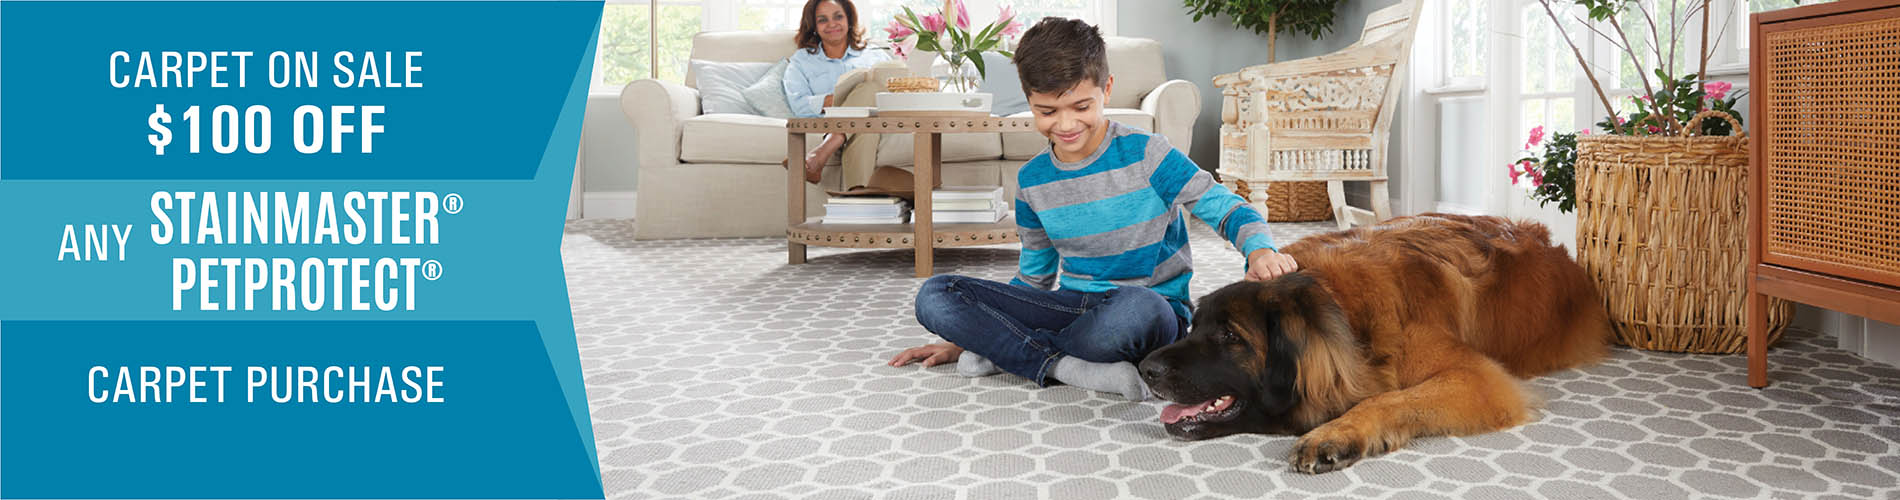 Carpet on Sale  $100 OFF Any Stainmaster® PetProtect™  Carpet Purchase